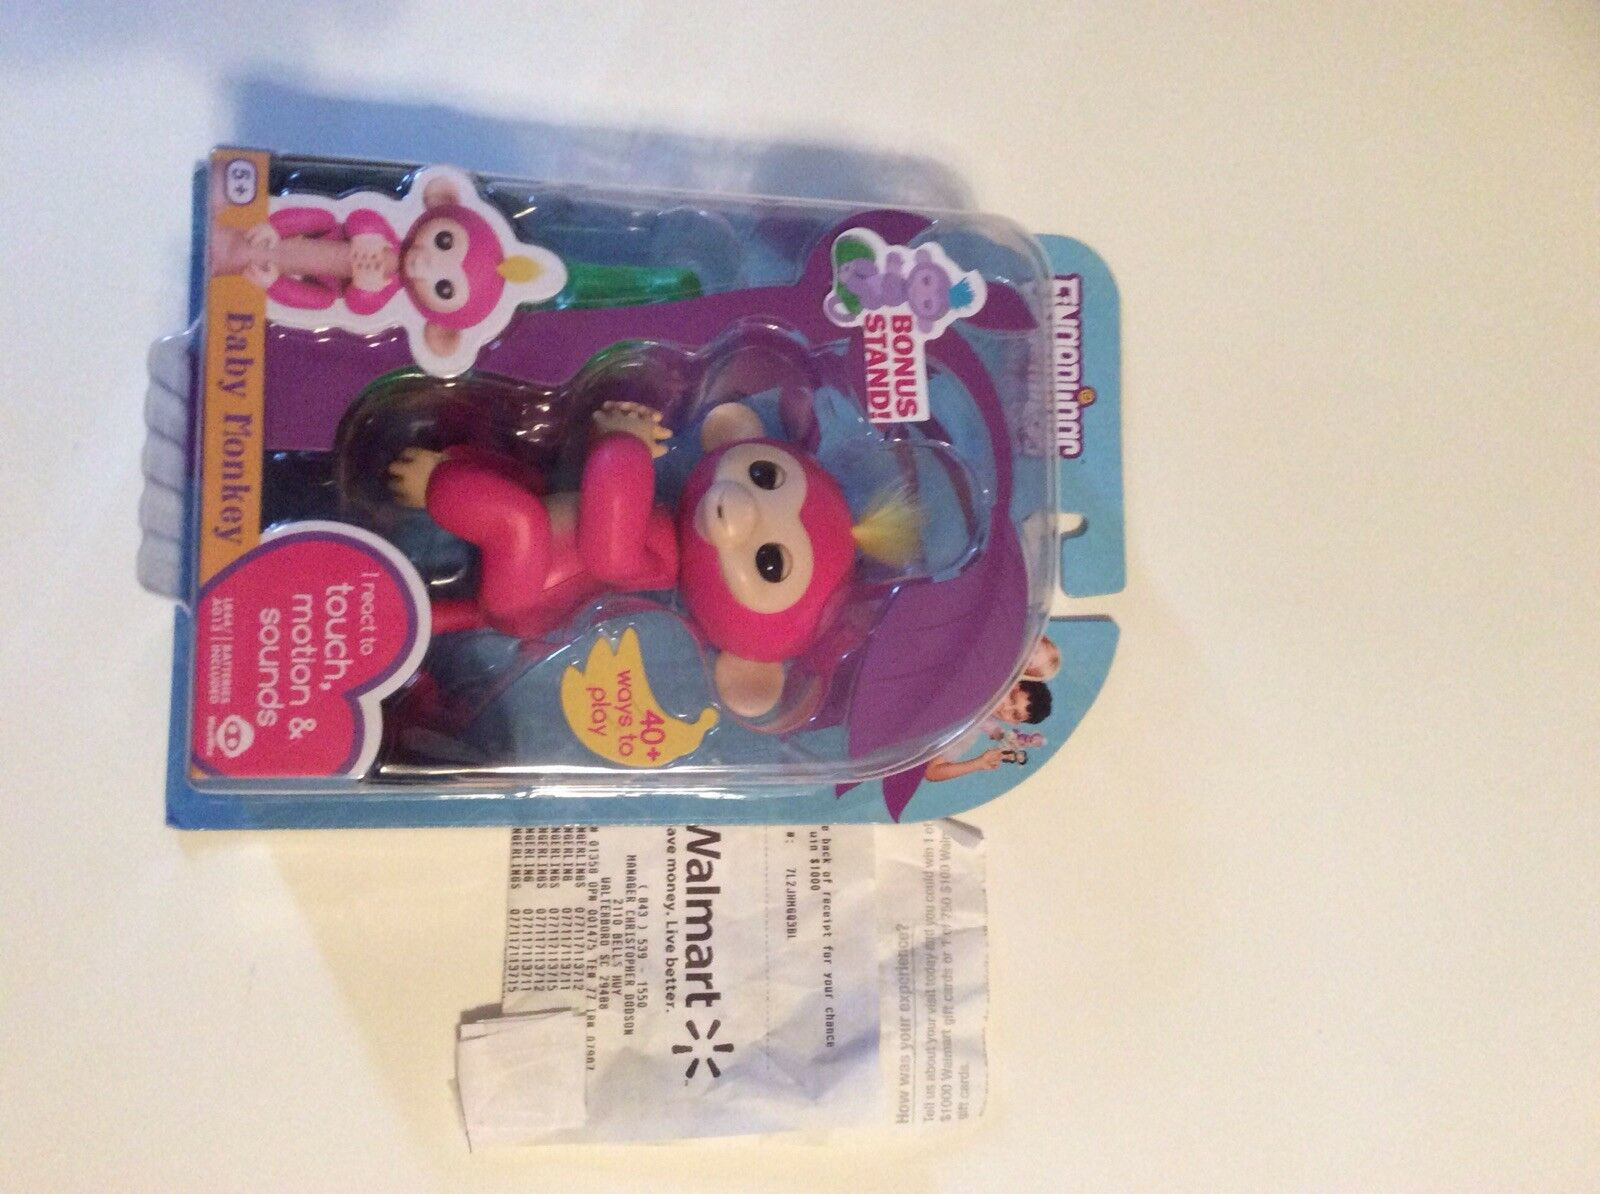 Authentic WowWee Fingerlings Interactive Baby Monkey Bella Fingerling + Stand